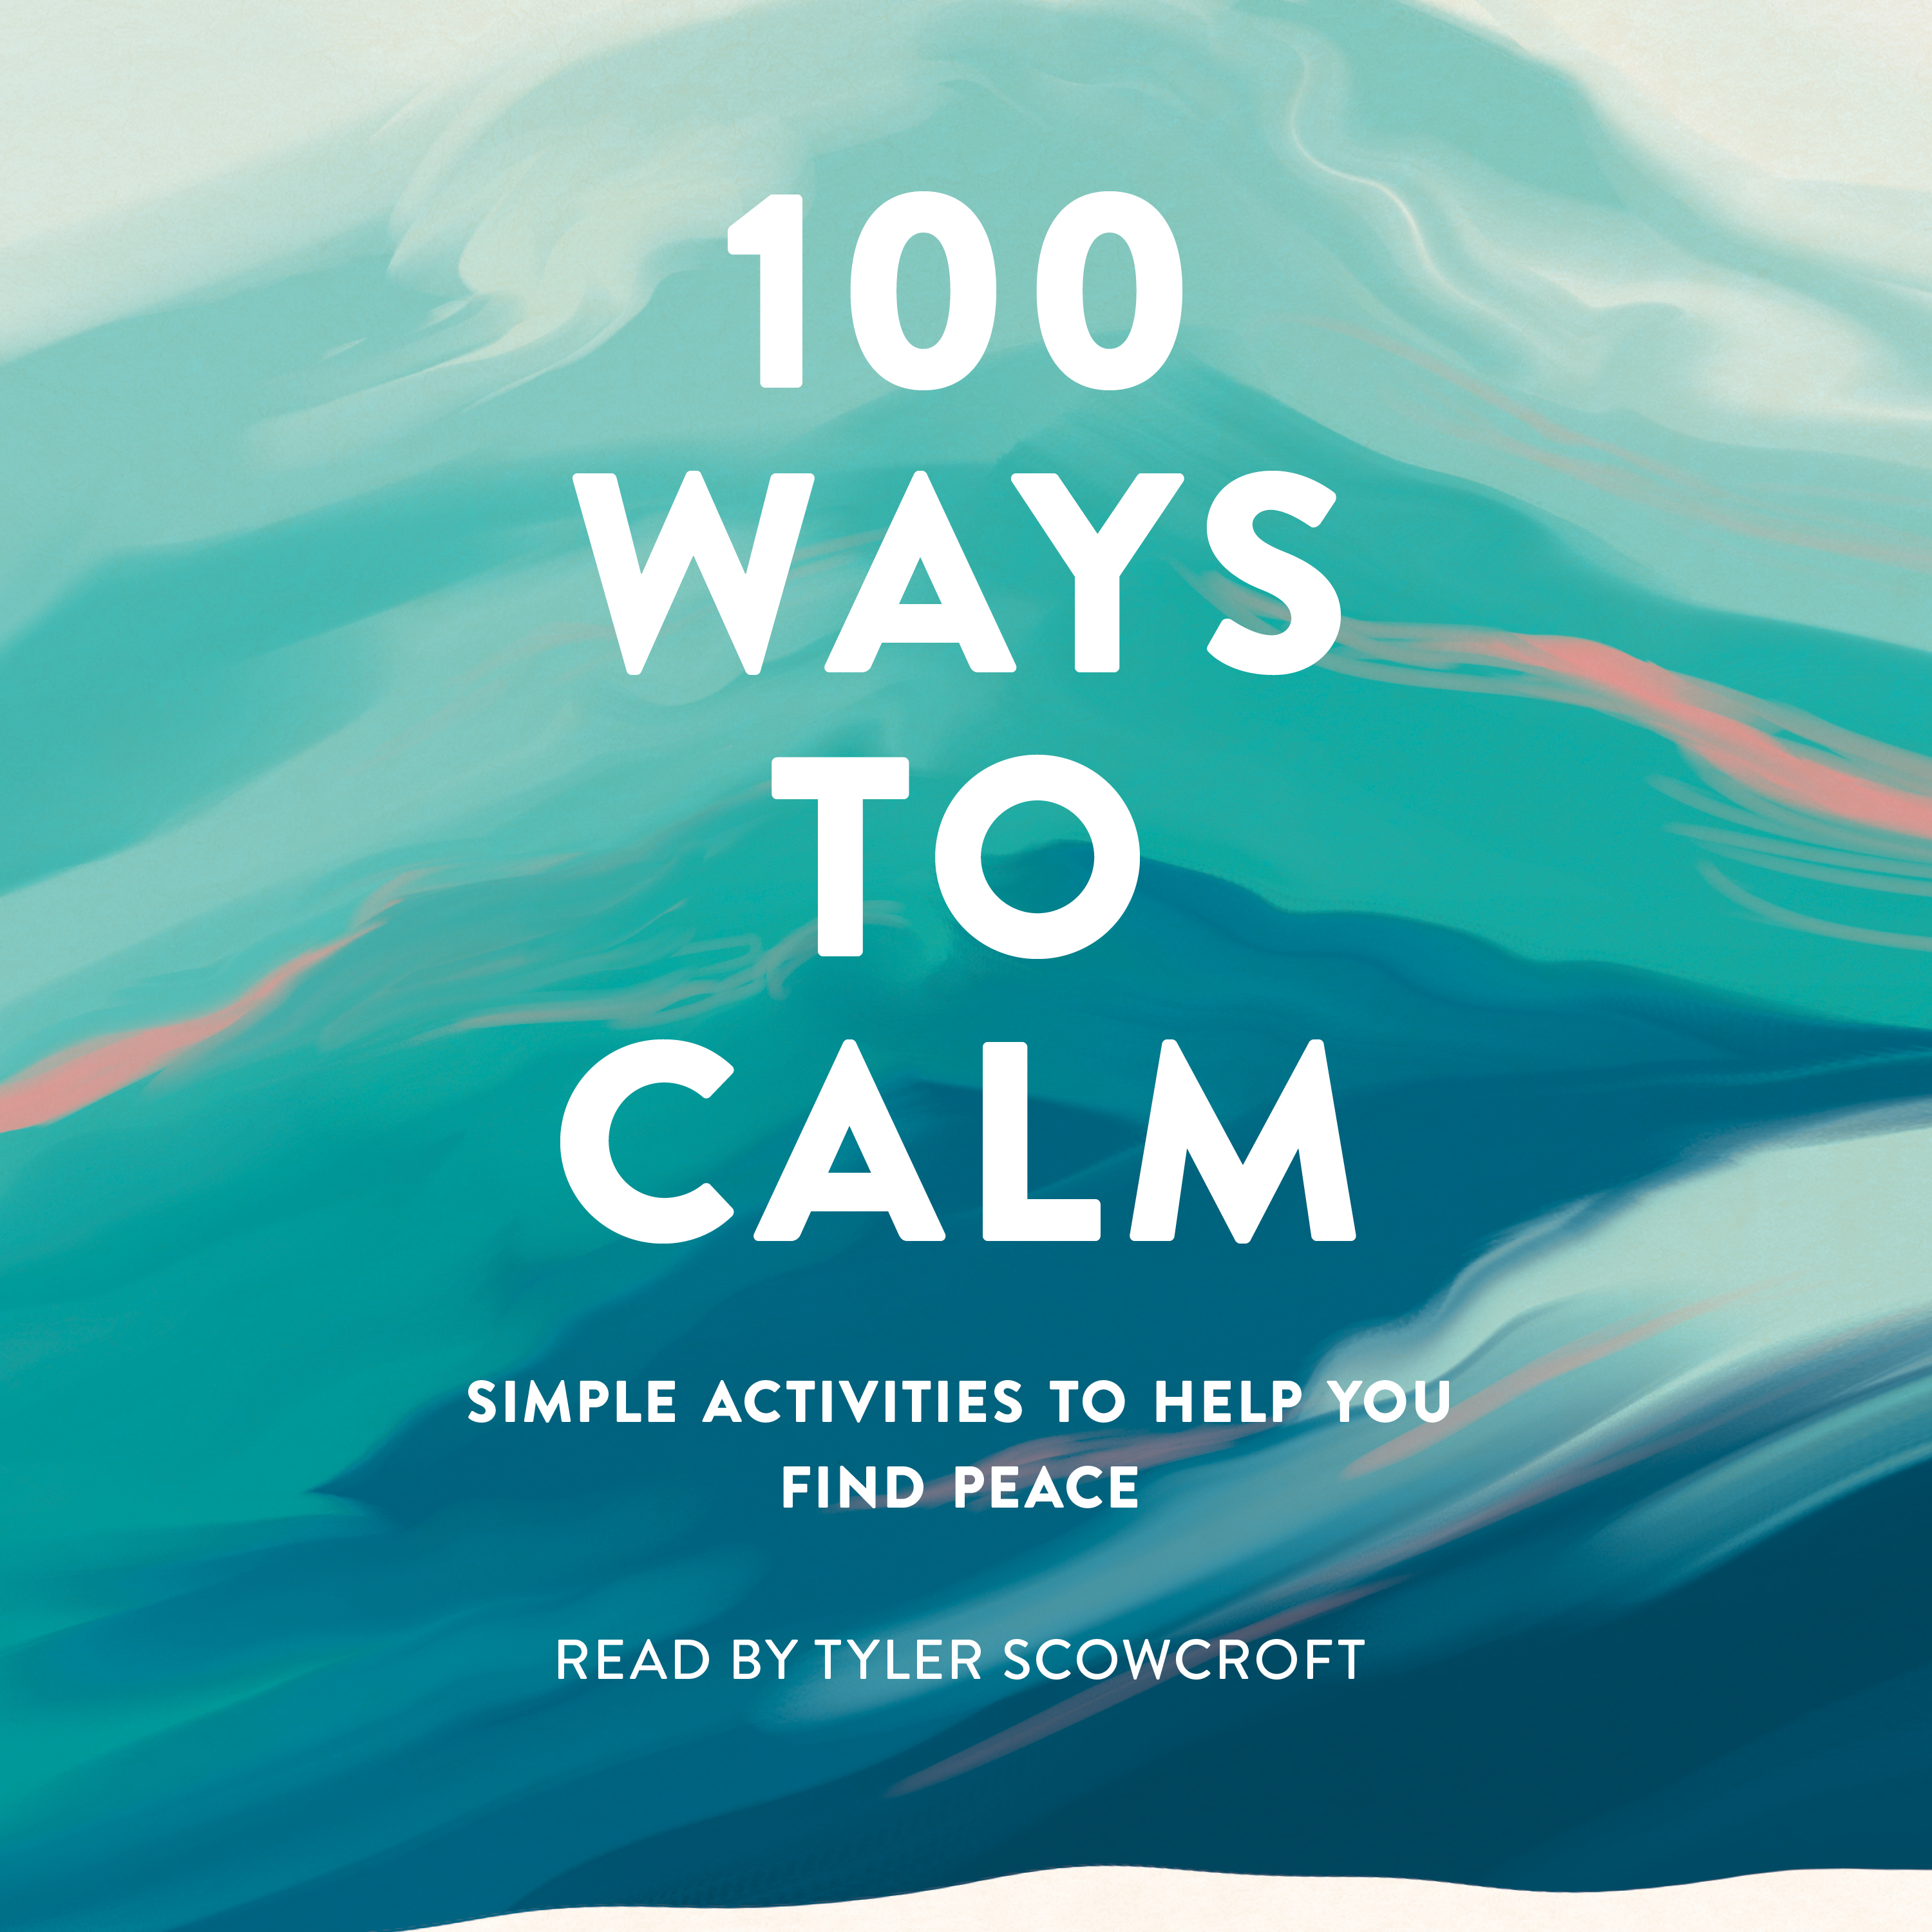 100 Ways to Calm